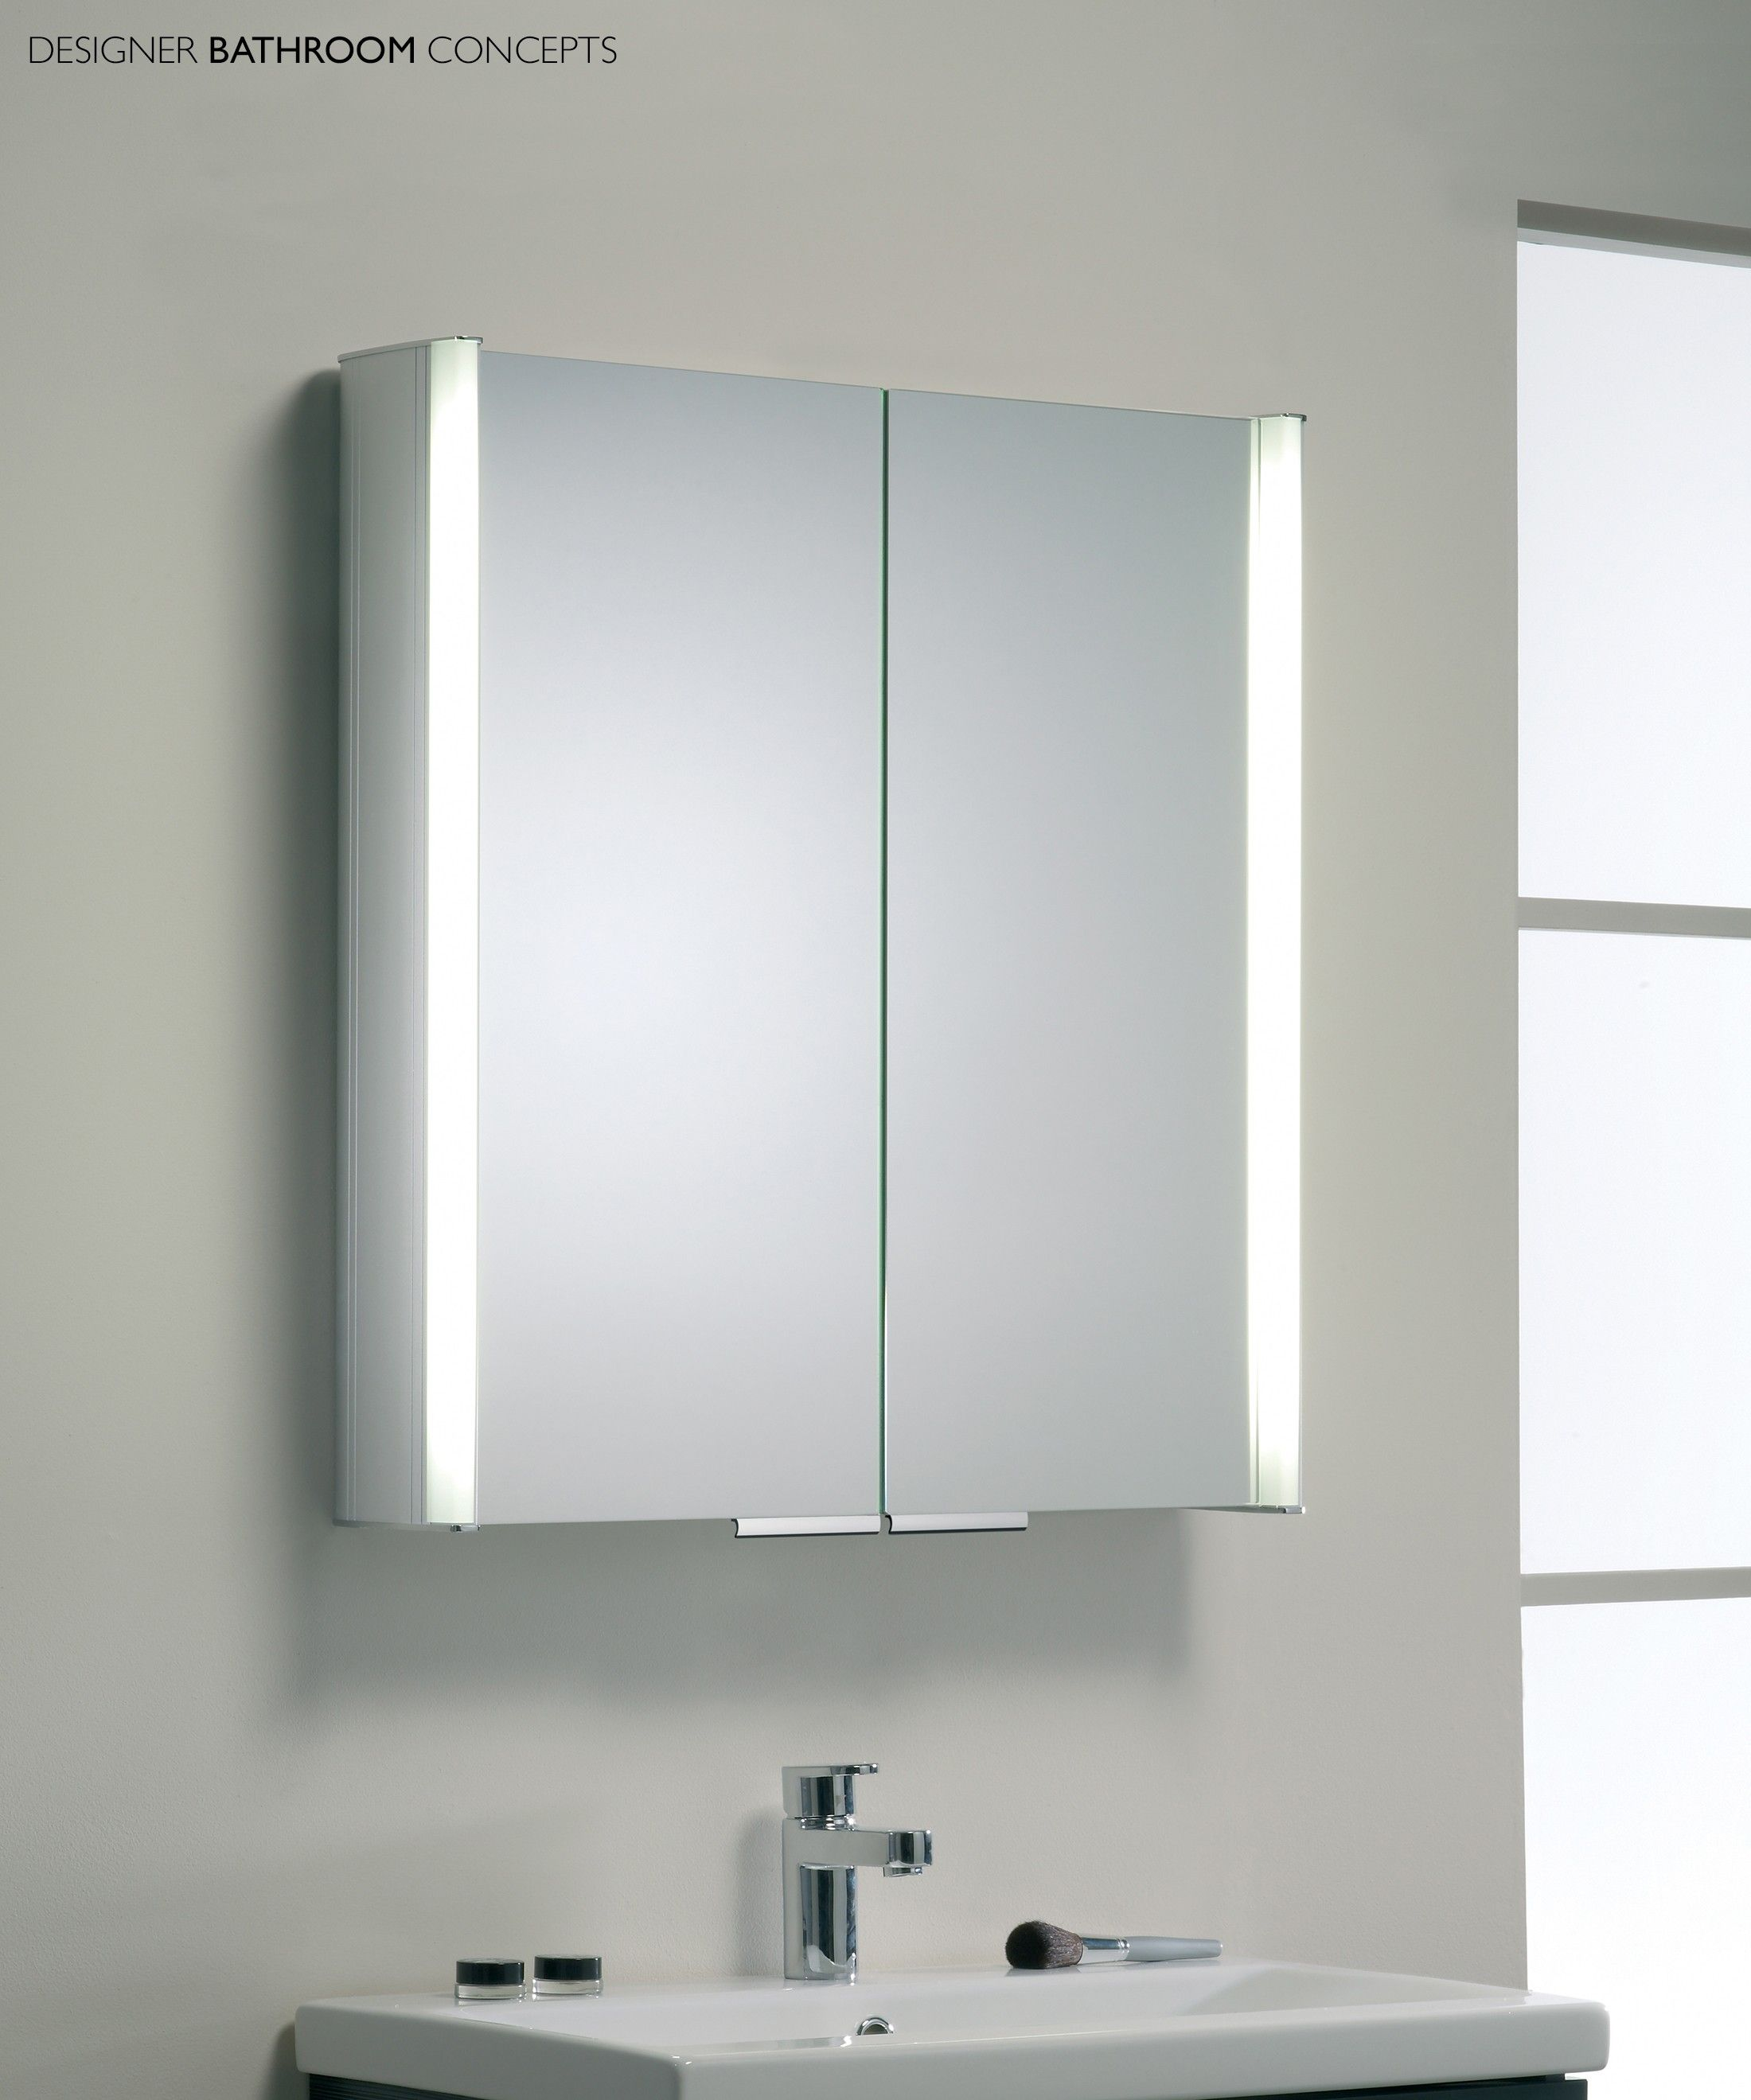 Illuminated Bathroom Mirror Cabinet | Bathroom Decor | Pinterest ...